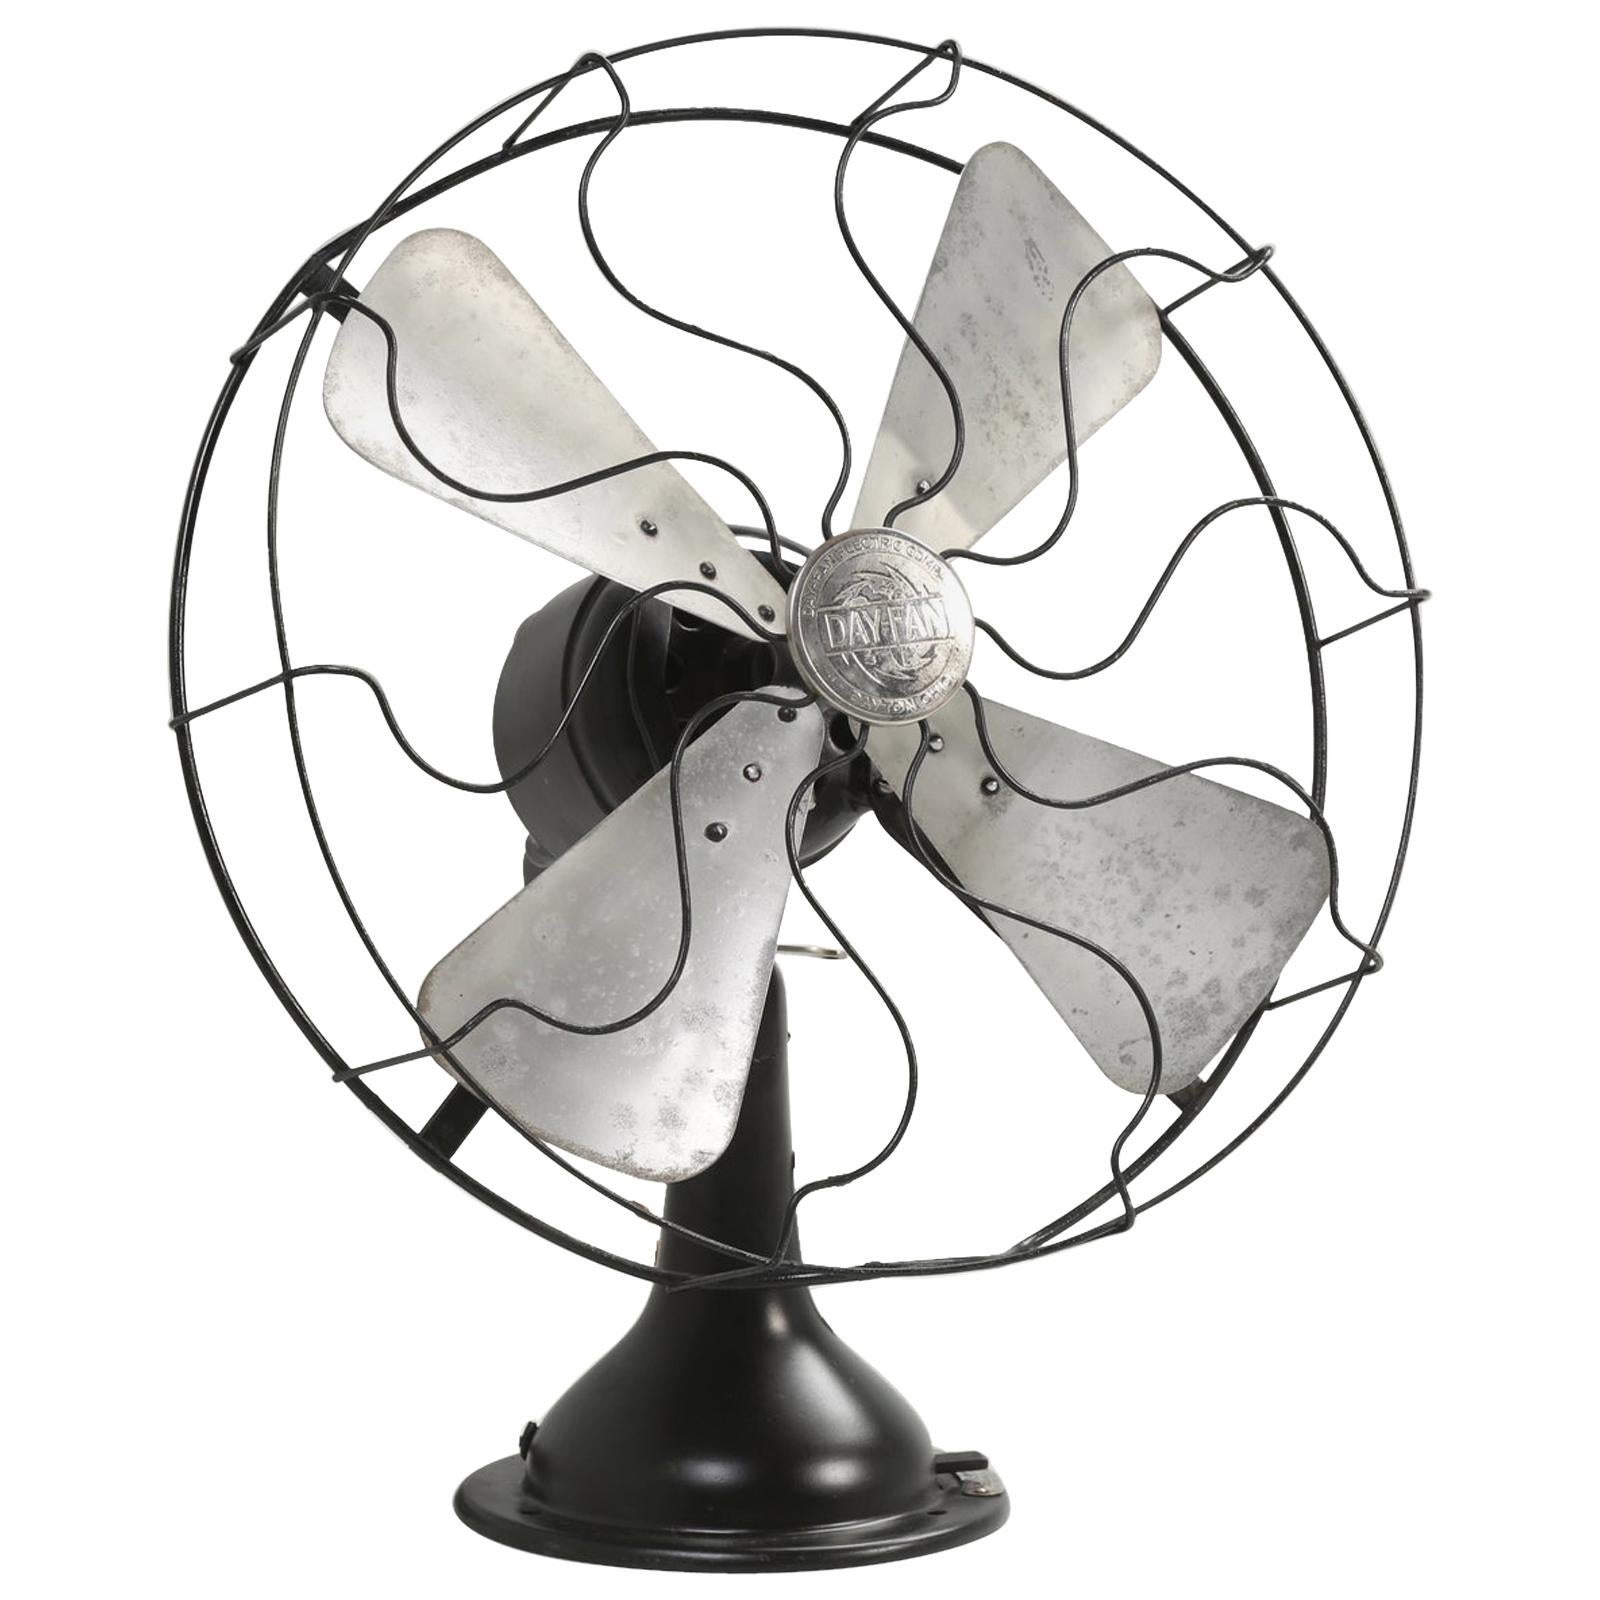 Vintage Electric Fan by the Day-Fan Company of Rochester, New York and it Works